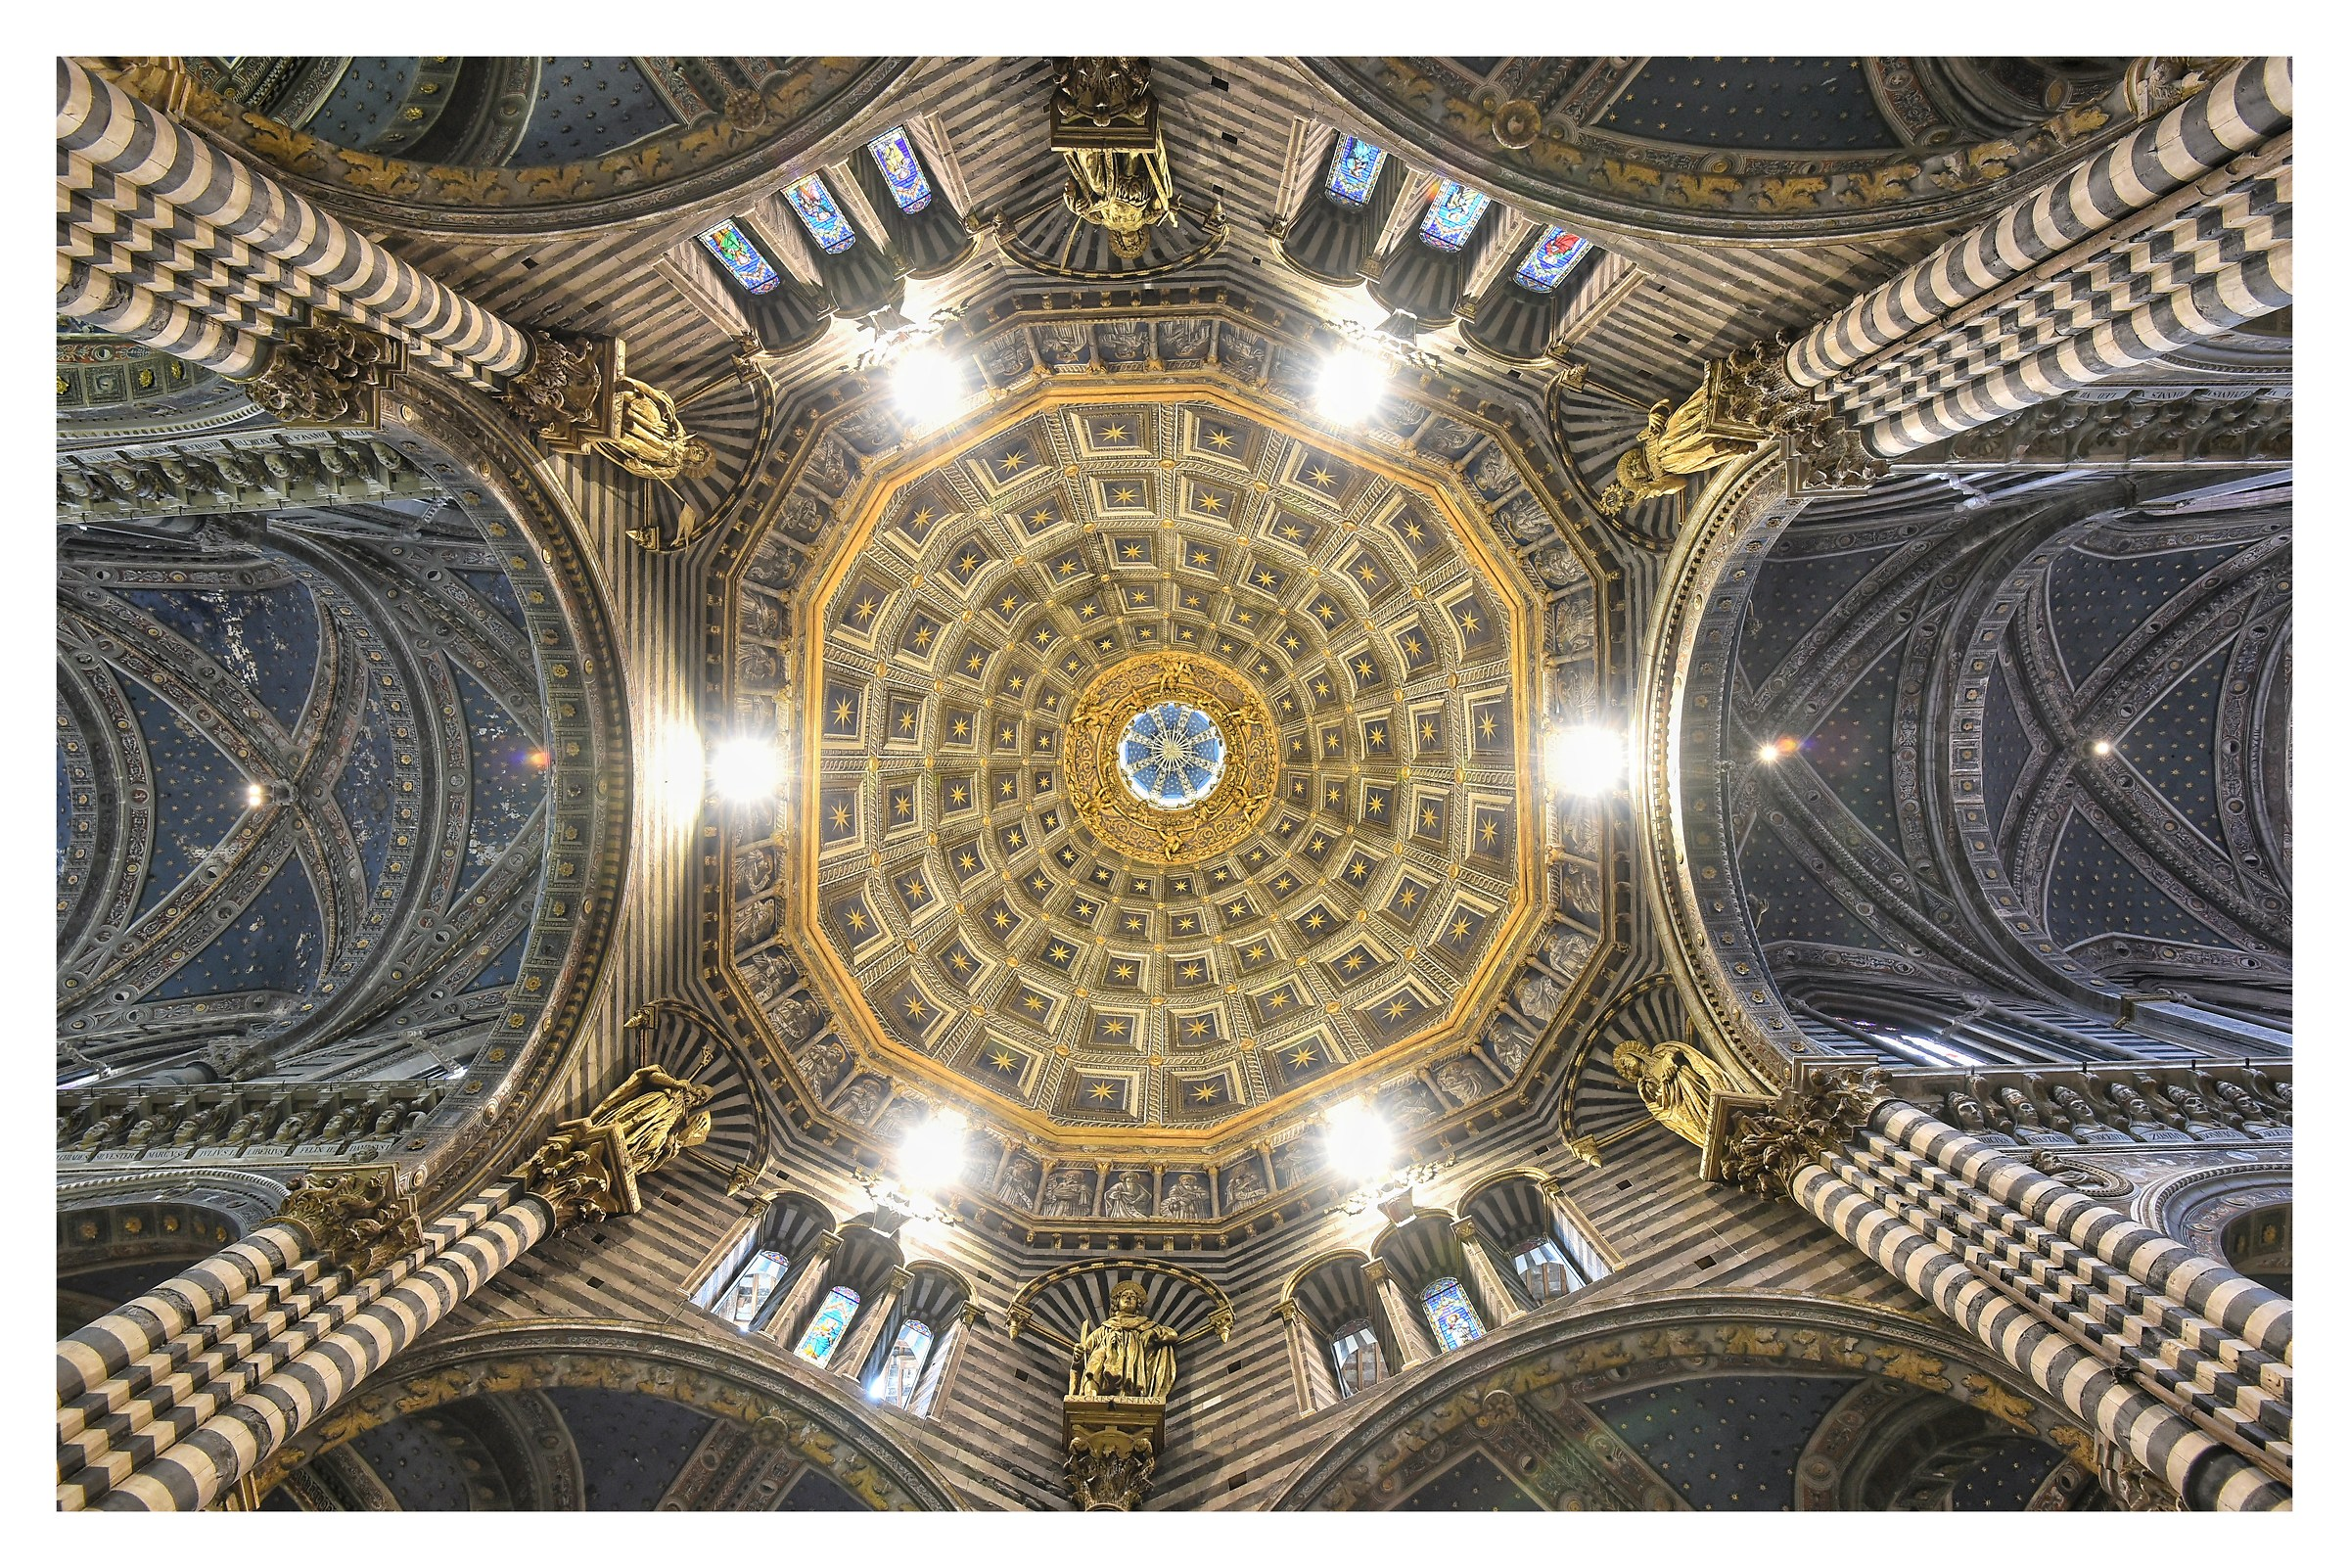 Dome of the Cathedral of Santa Maria Asssunta (Siena)...